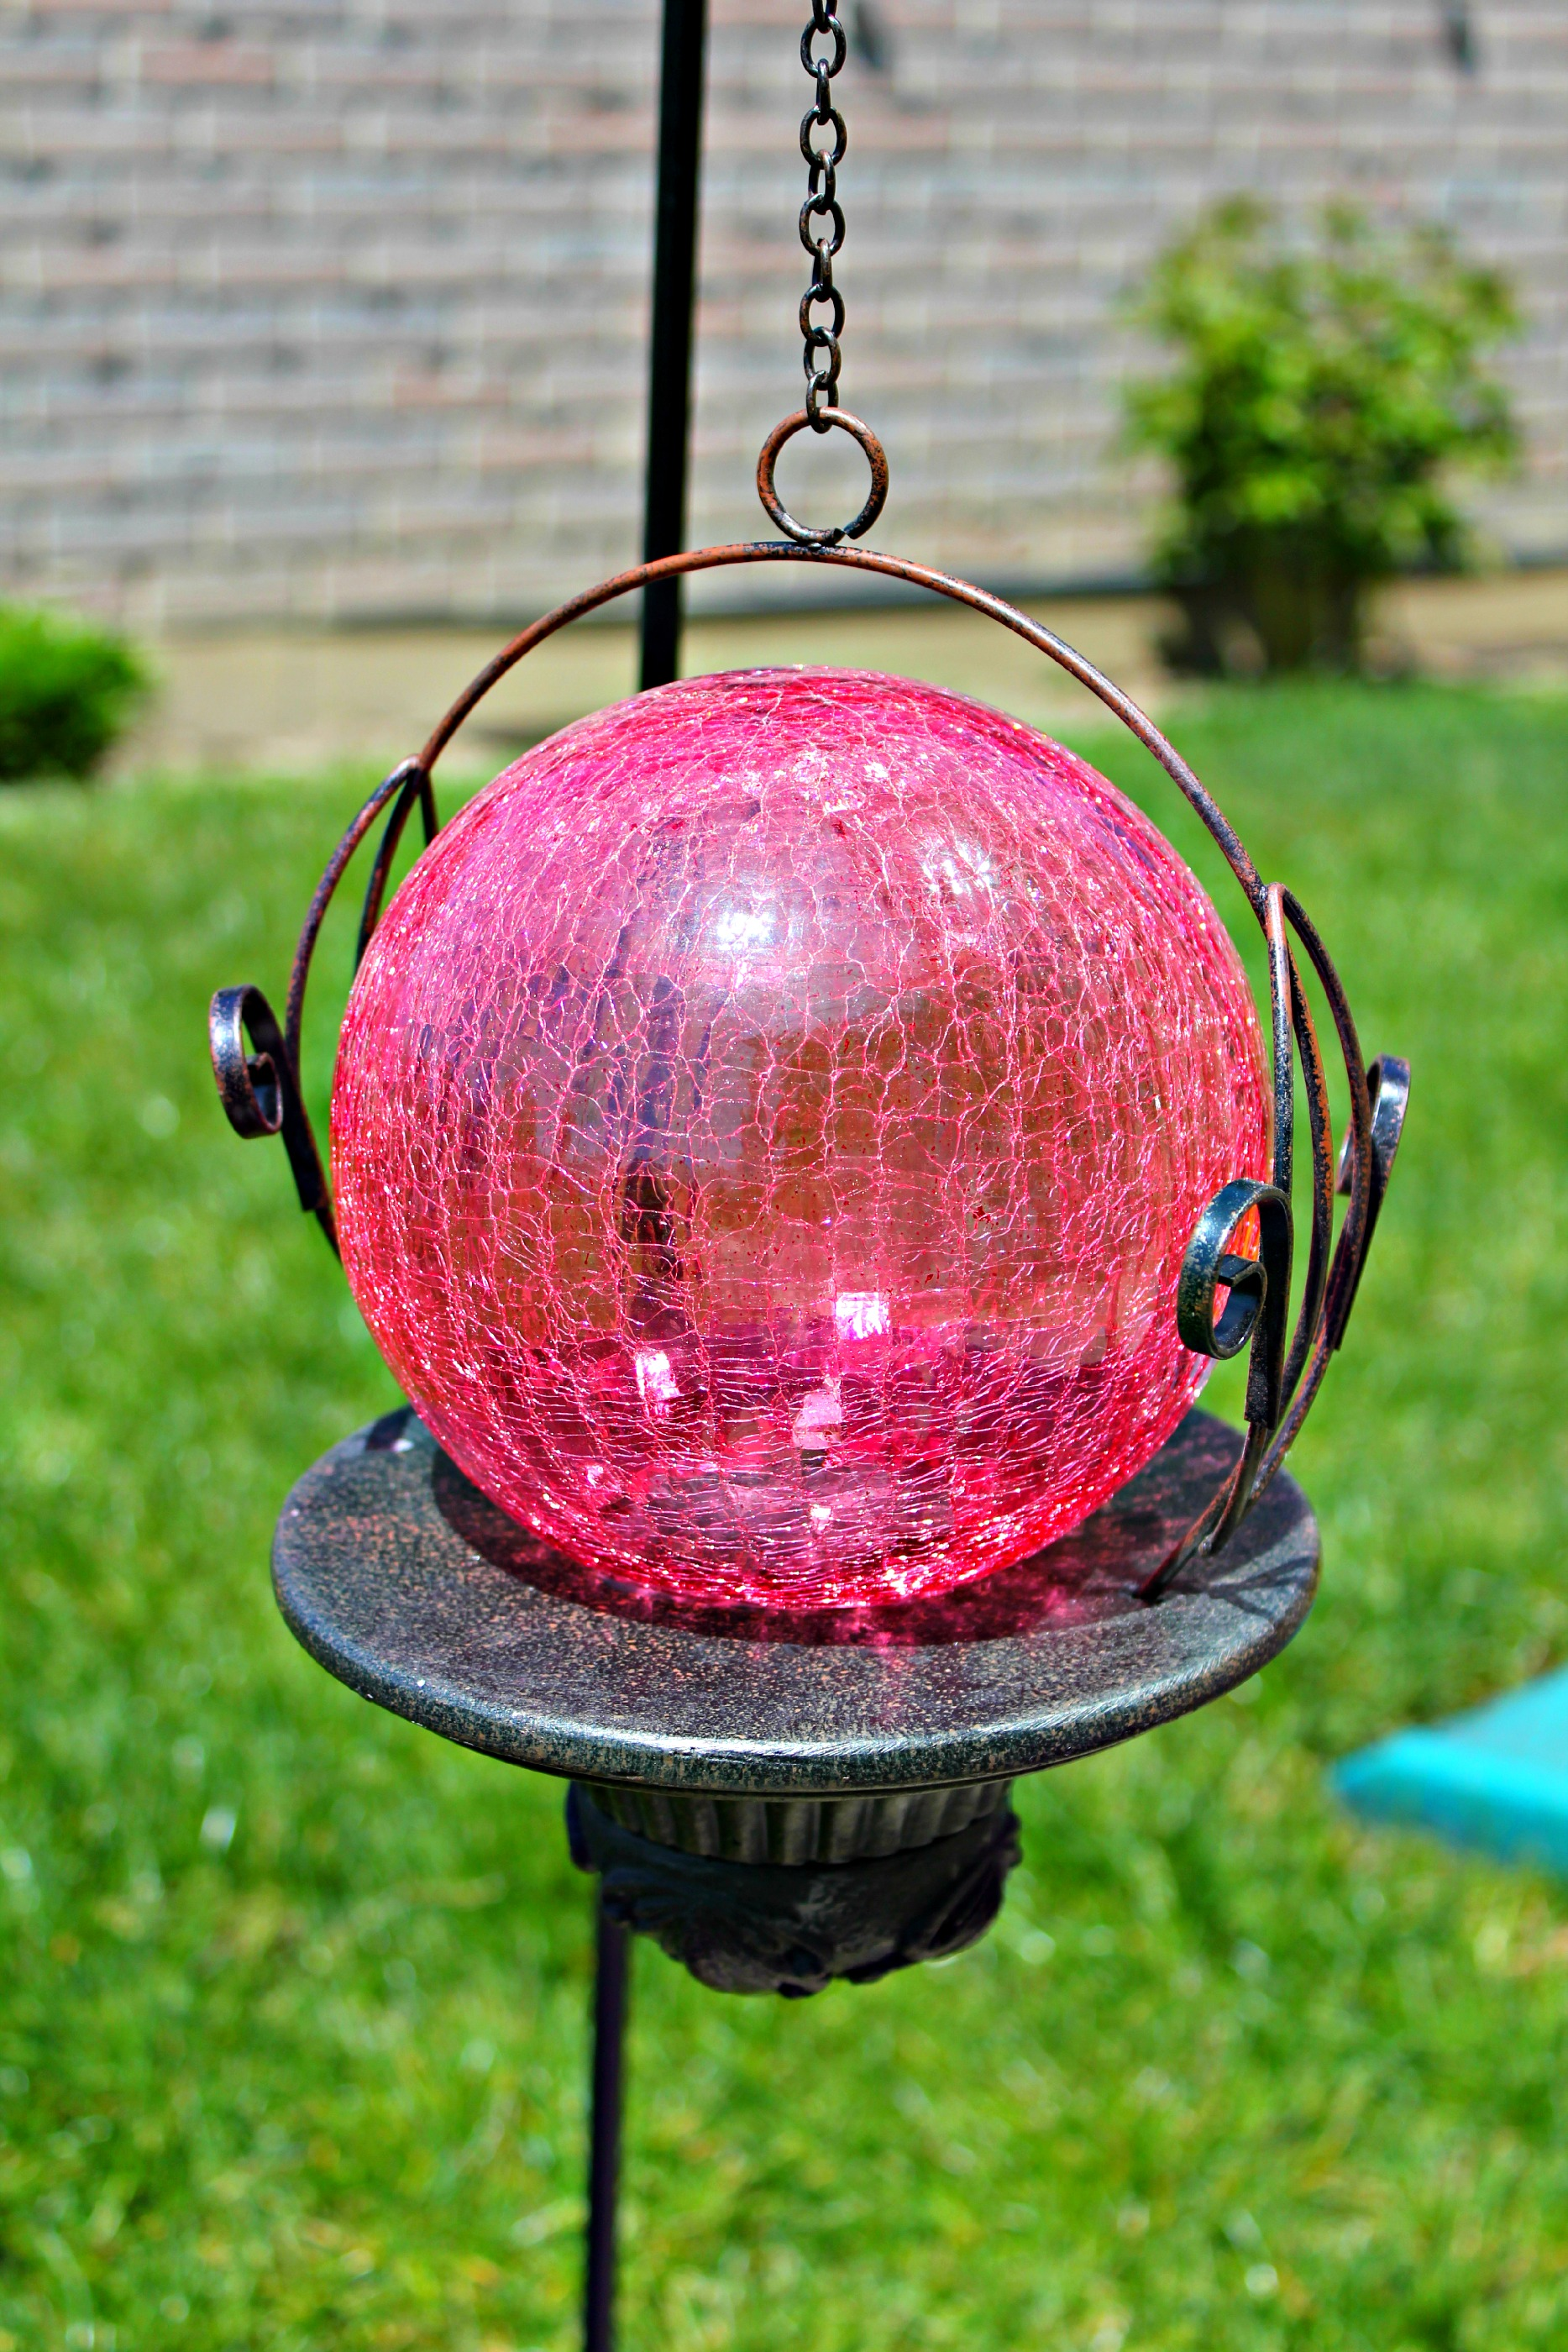 #KmartOutdoor Living for Mother's Day: Sprucing Up My Front Yard!